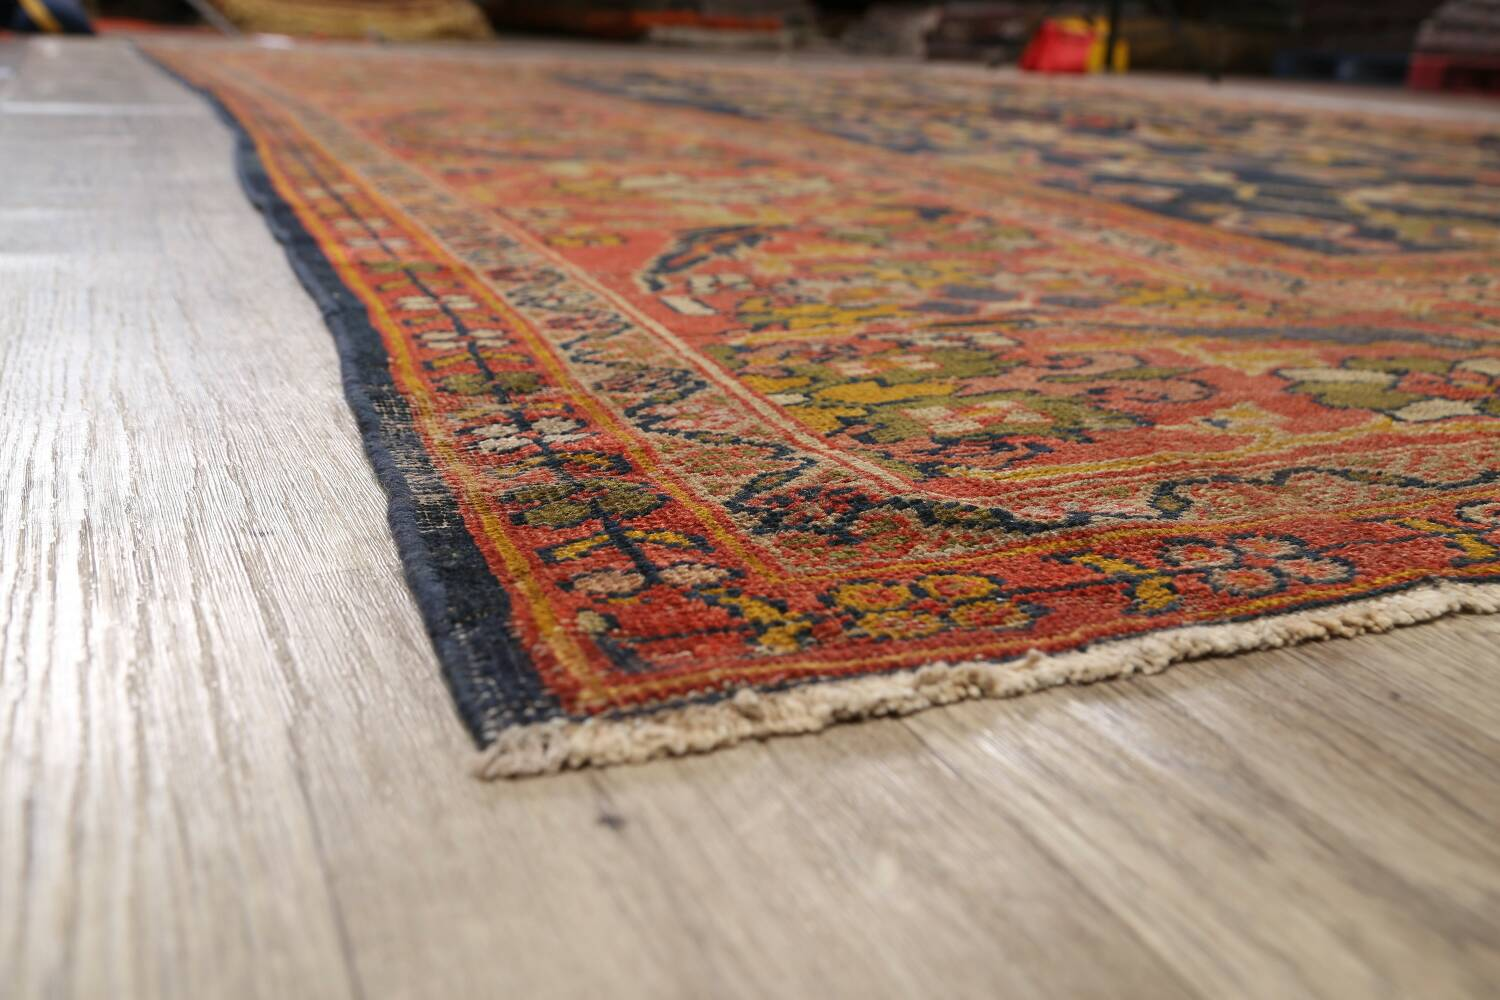 Antique Vegetable Dye Sultanabad Persian Area Rug 11x14 Large image 6